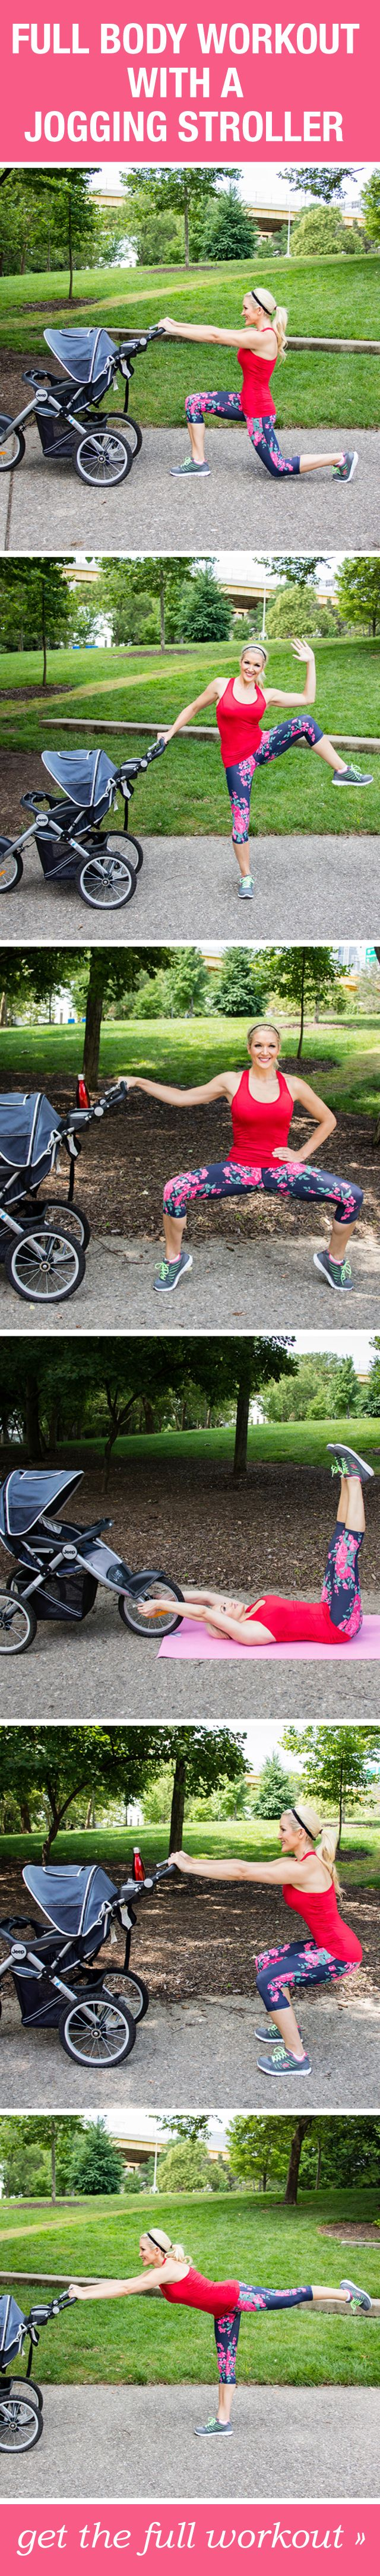 Grab your stroller and try this full body fitness workout! You can aslo check www.postchildbirthweightloss.com